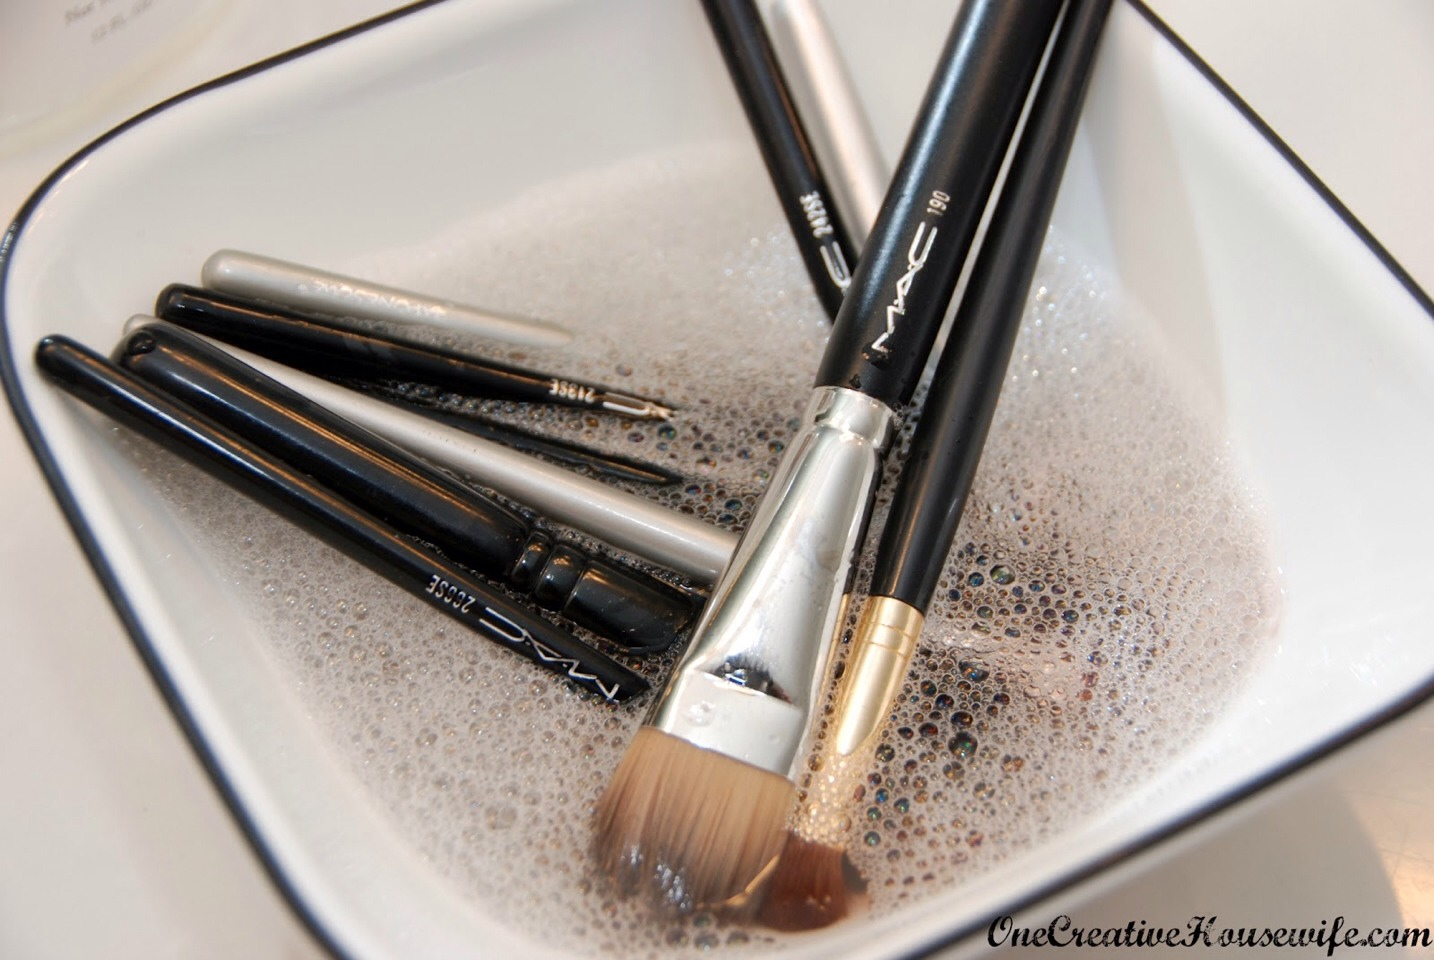 cleaning your make up brushes are very important!